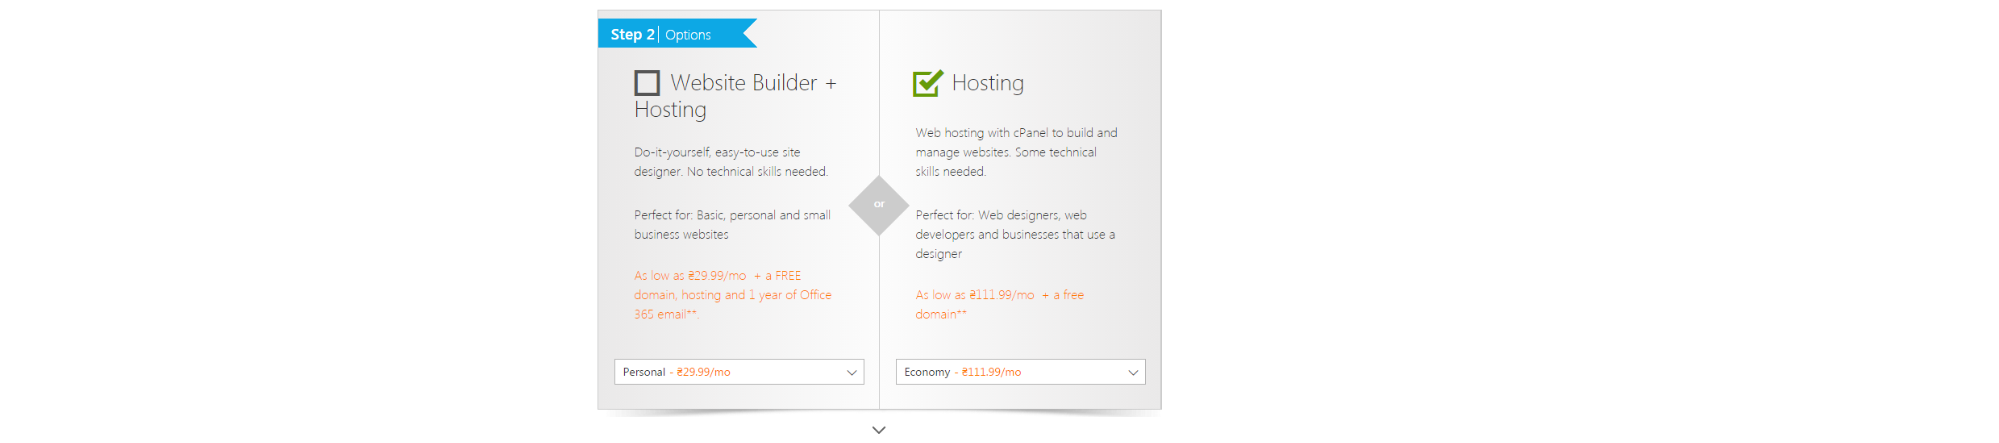 purchase magento hosting